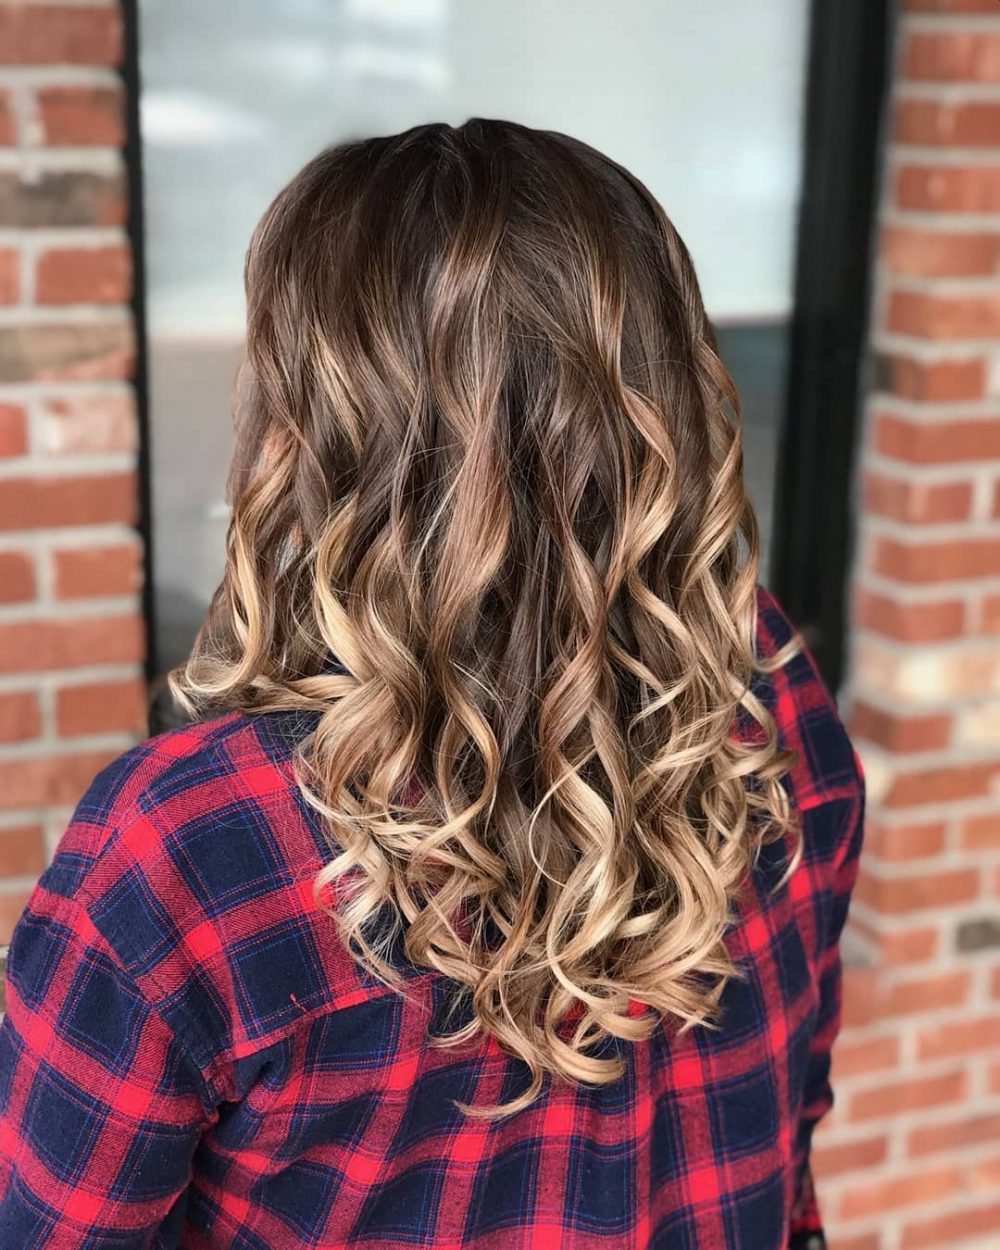 Go-To Curls hairstyle